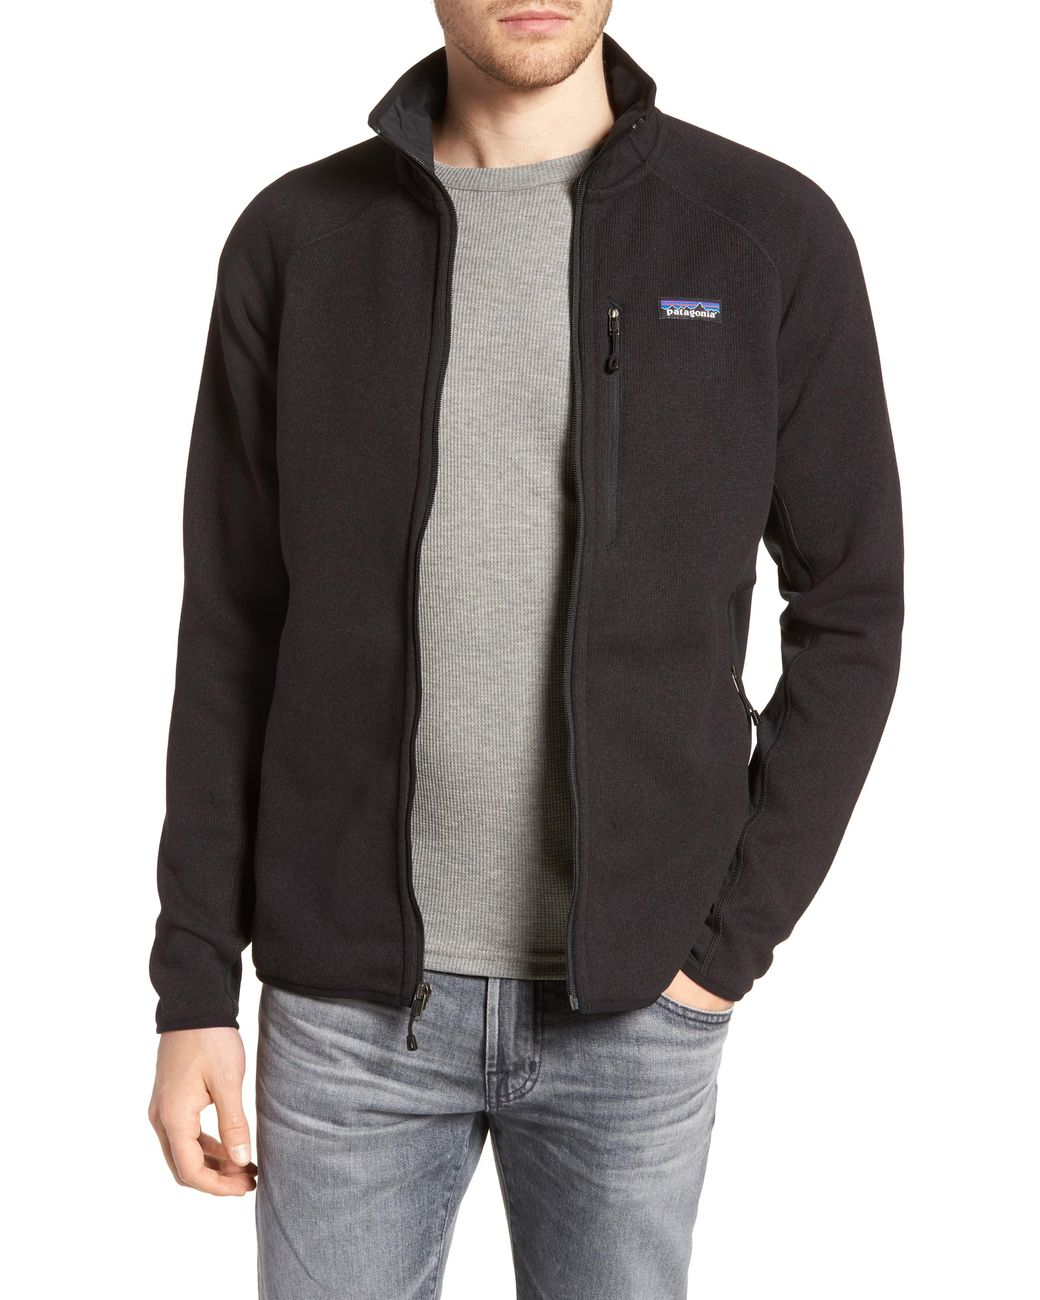 timeless design new lifestyle purchase cheap Patagonia Fleece Better Sweater Performance Slim Fit Zip Jacket in ...